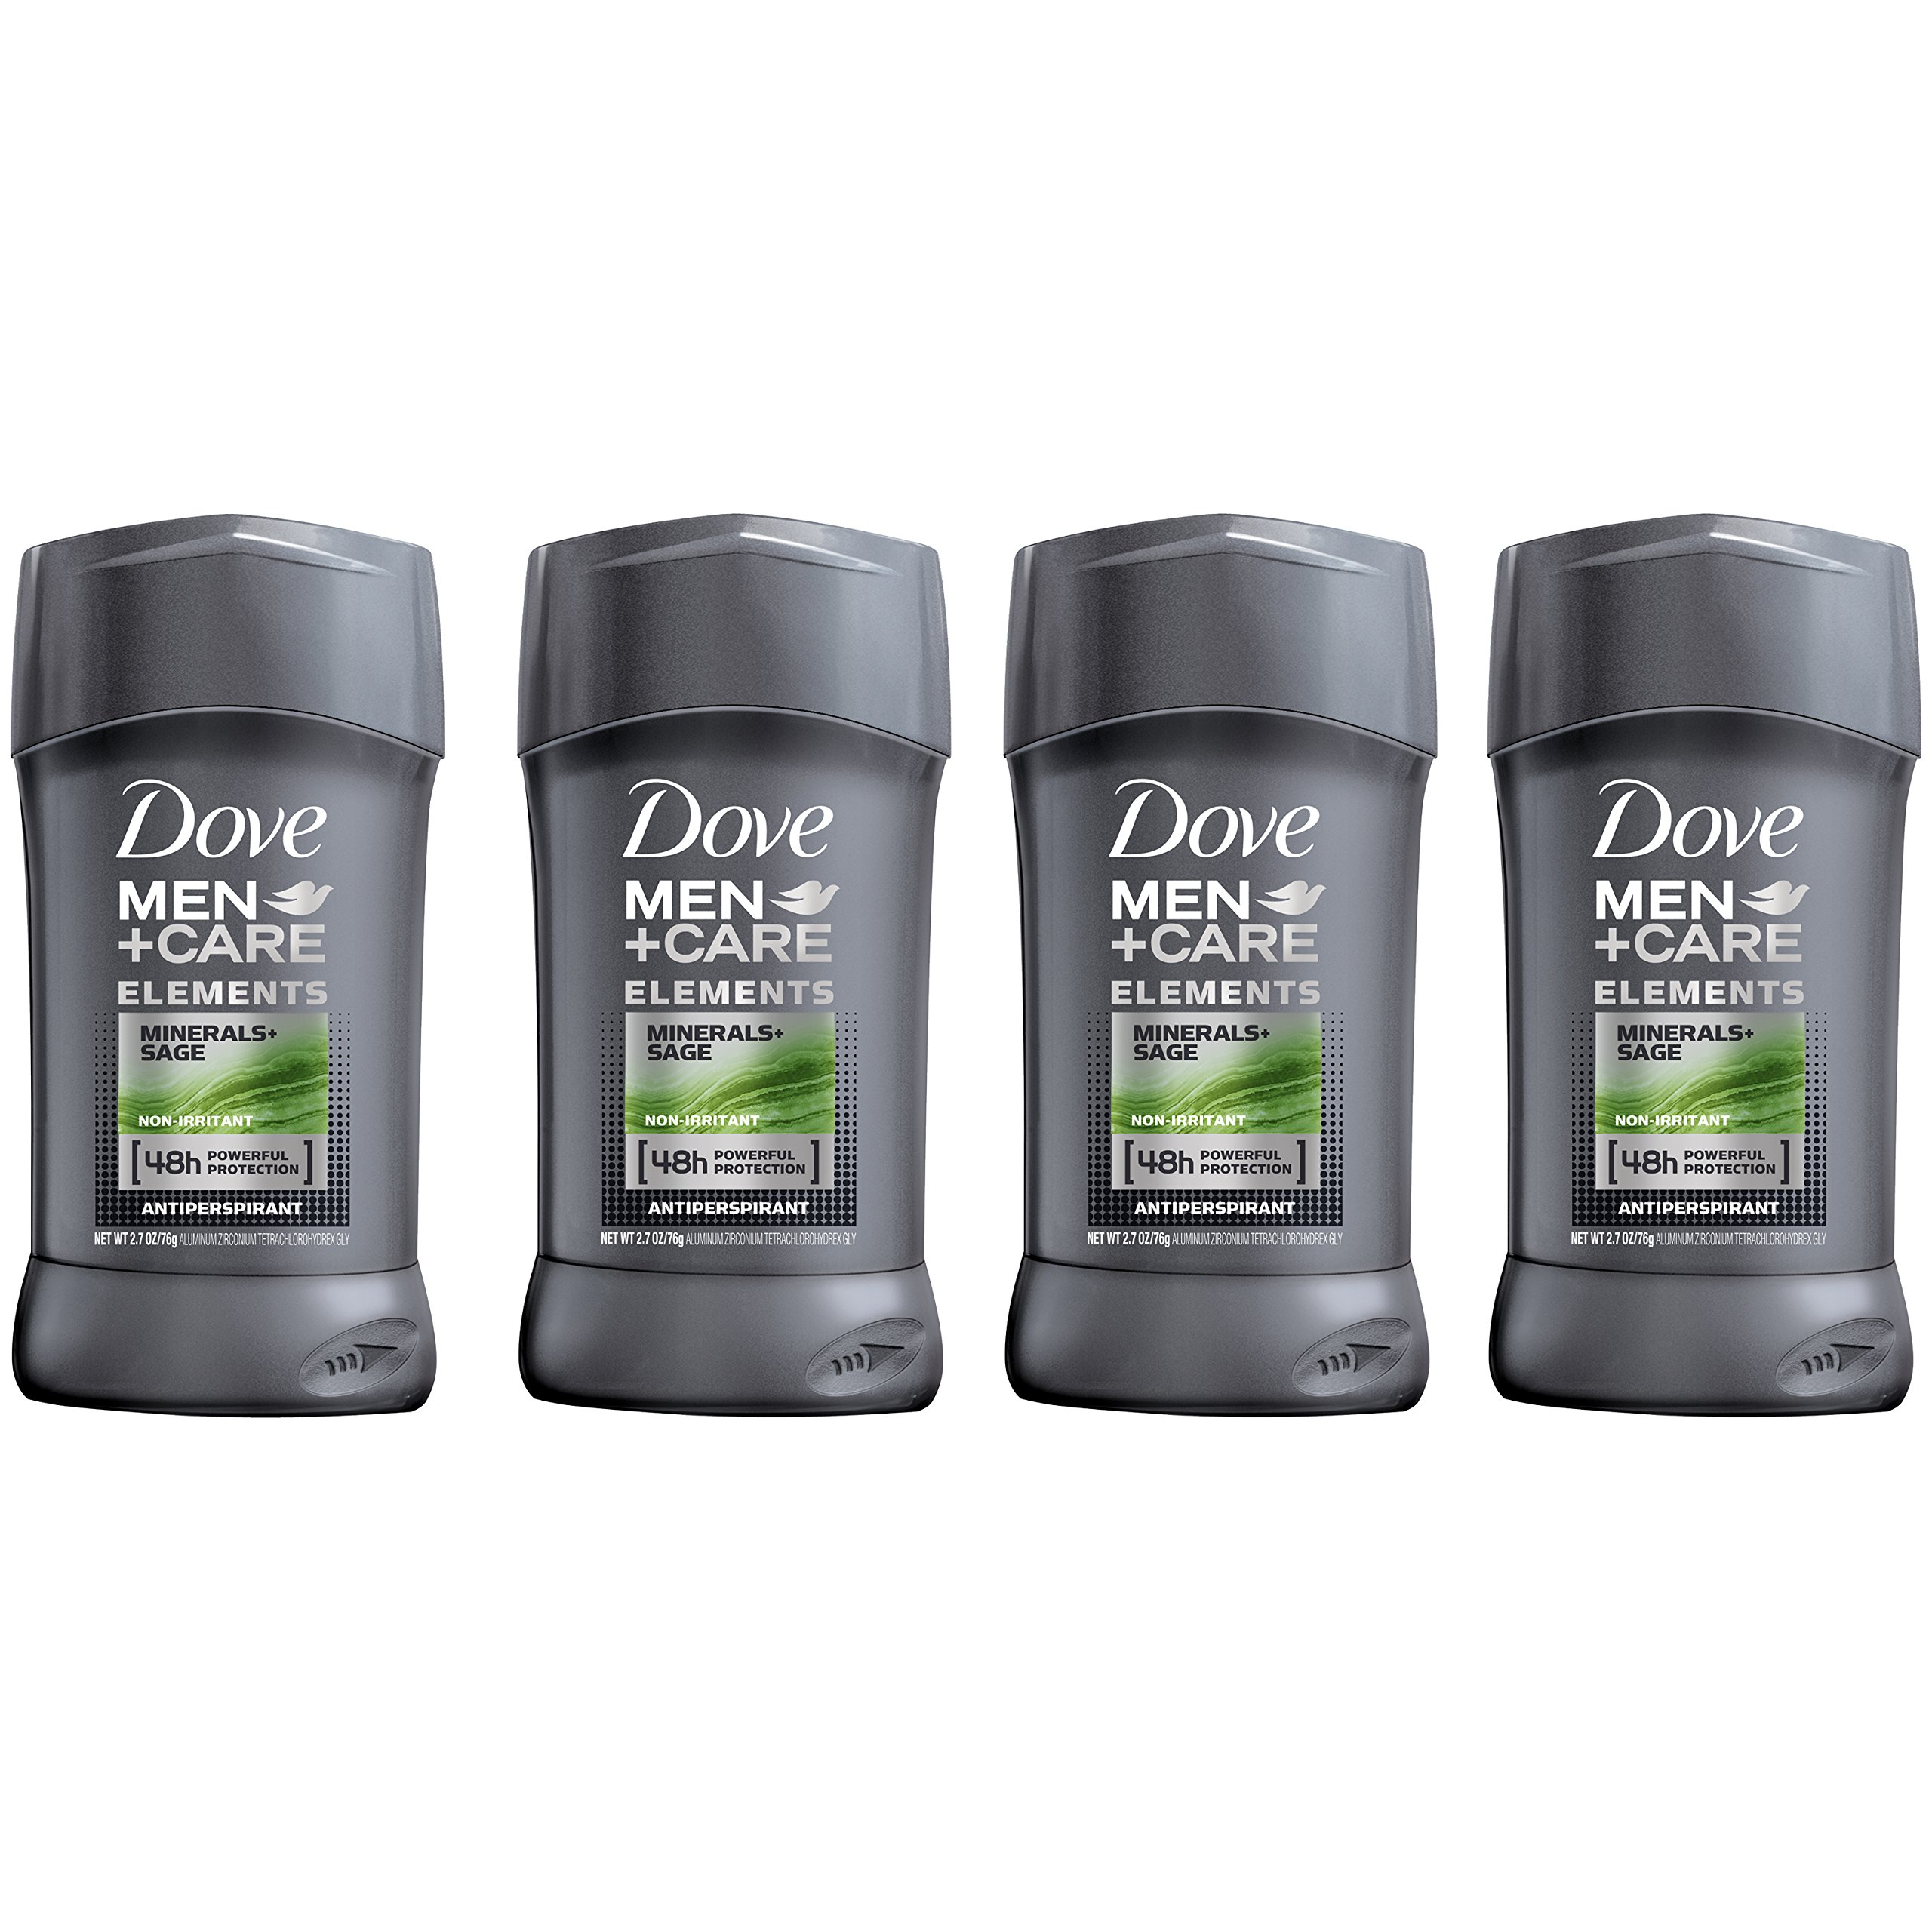 Dove Men+Care Elements Antiperspirant Deodorant Stick, Minerals + Sage 2.7 oz, (Pack Of 4)